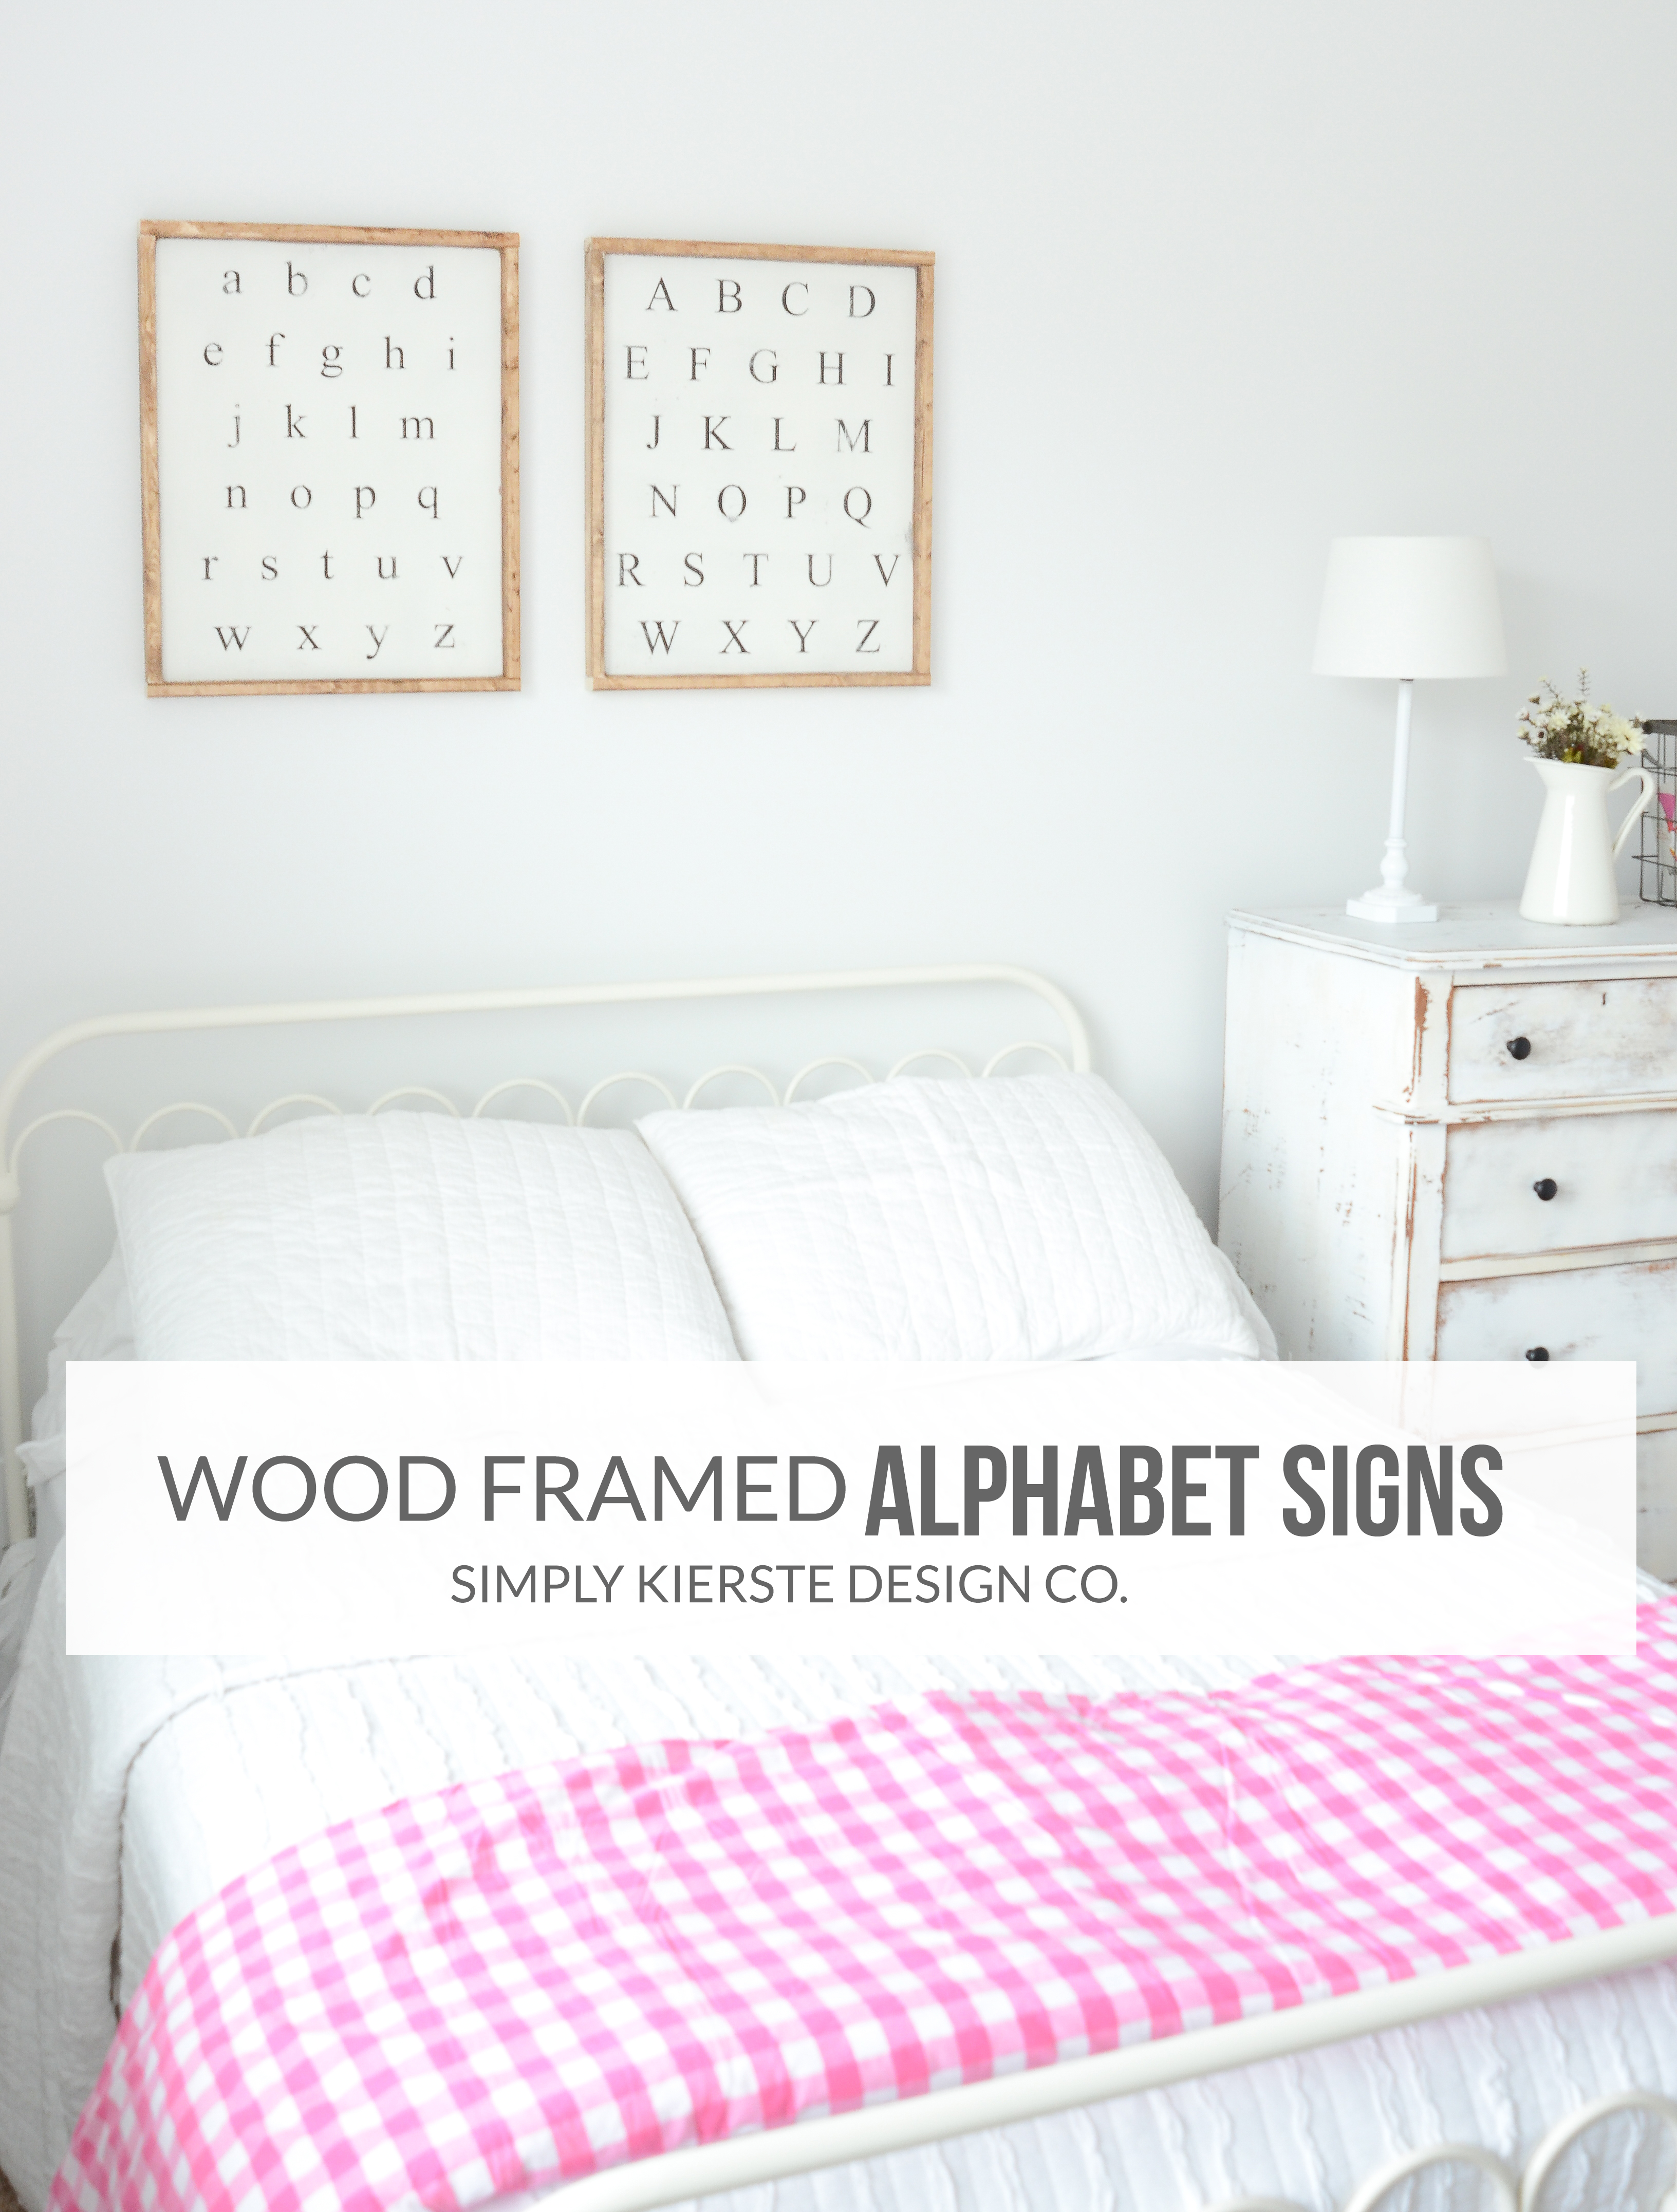 Alphabet Wood Framed Signs - Simply Kierste Design Co.